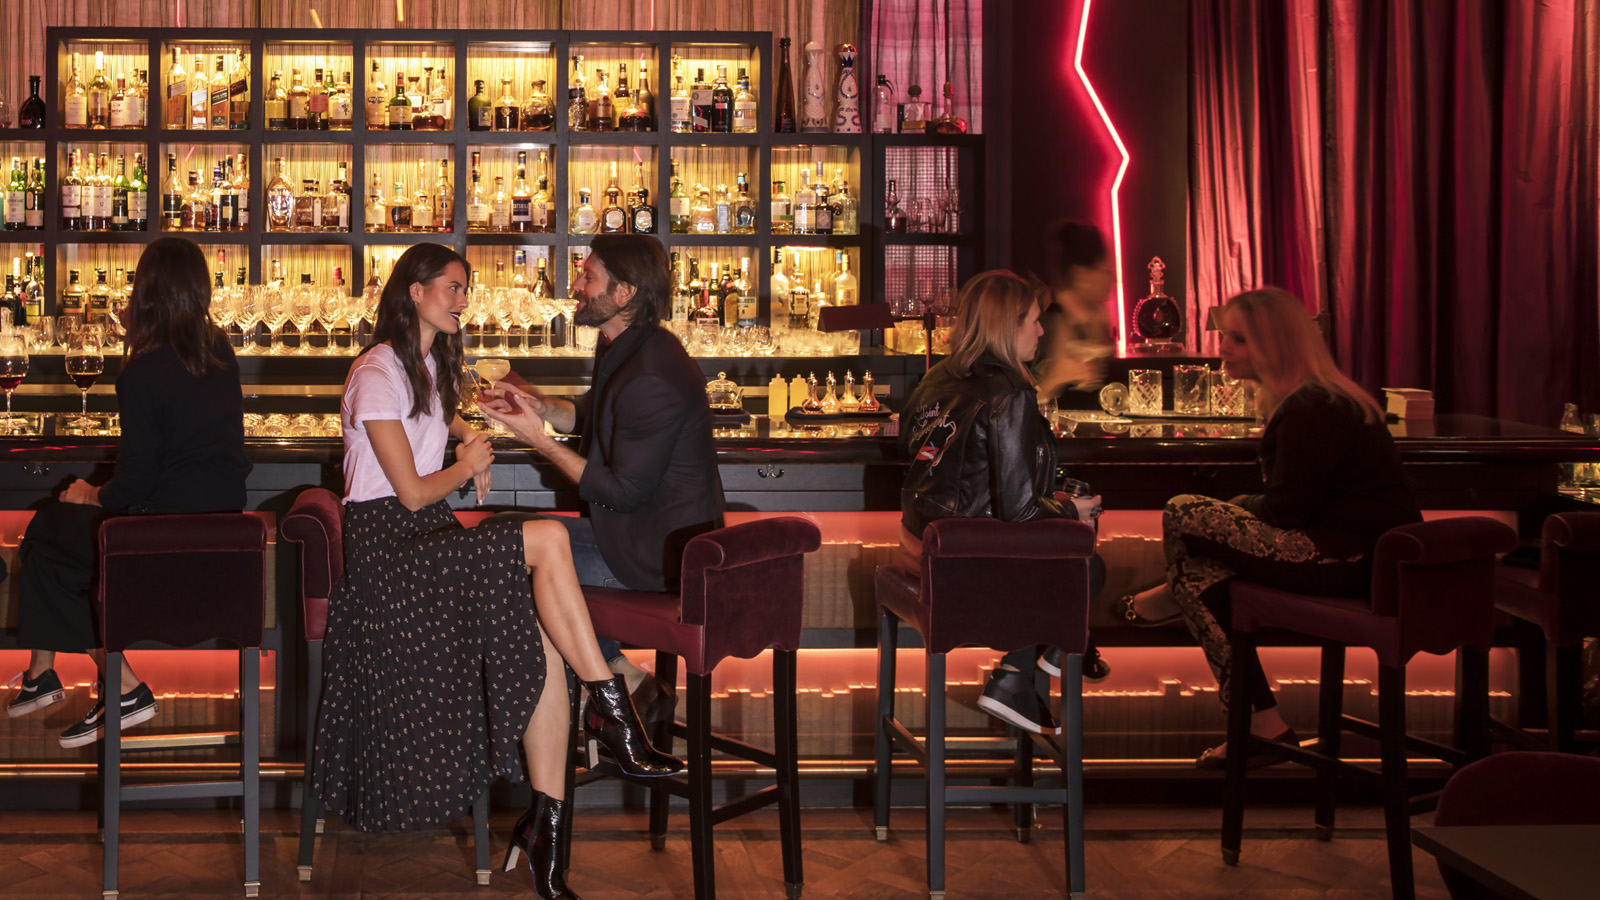 Live the Life of Luxury at Four Seasons Downtown this Valentine's Day